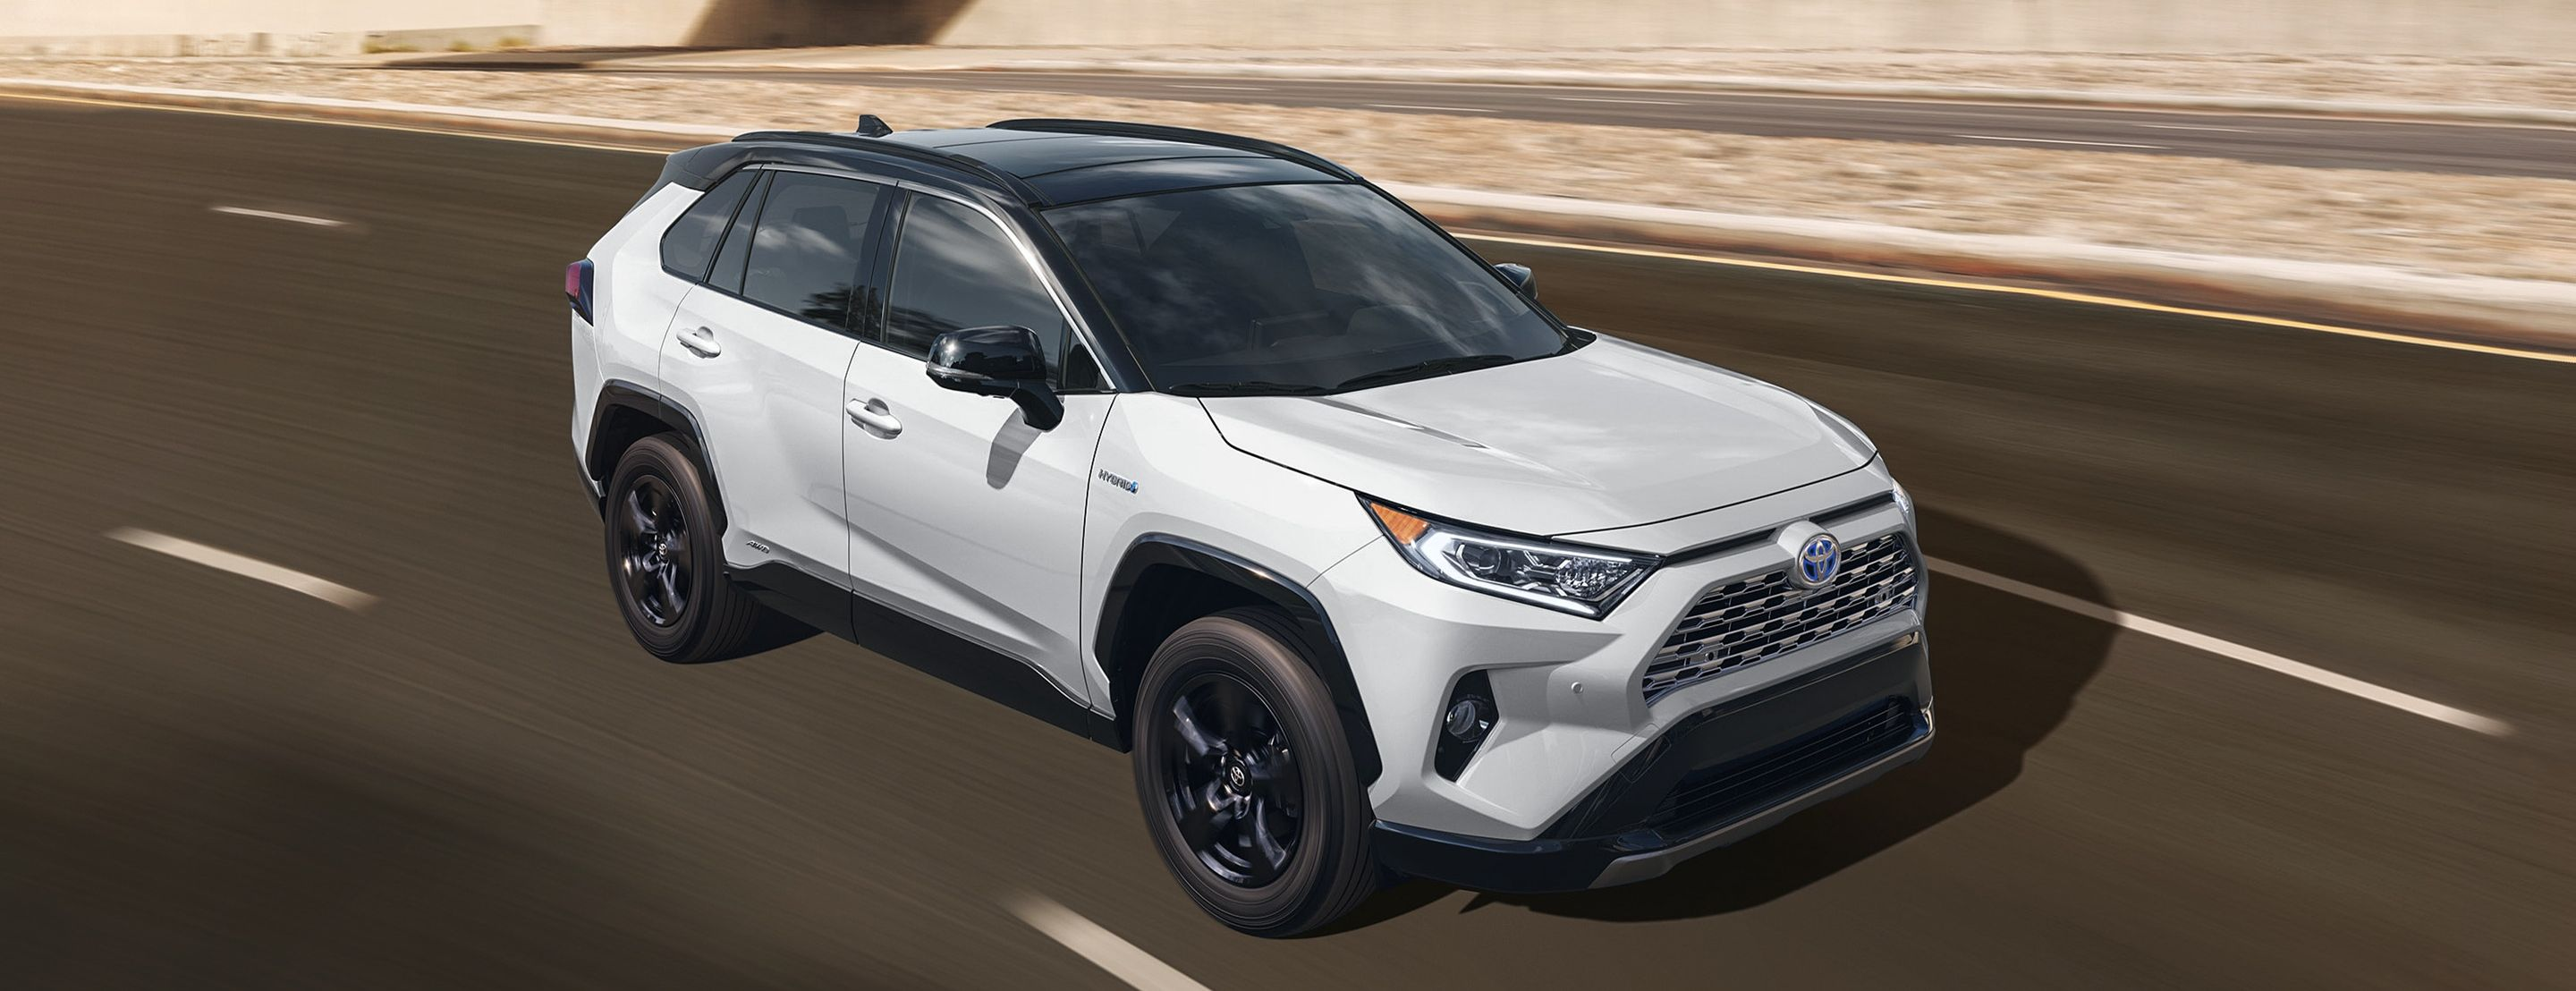 2019 Toyota RAV4 Hybrid vs 2019 Nissan Rogue Hybrid in New Castle, DE